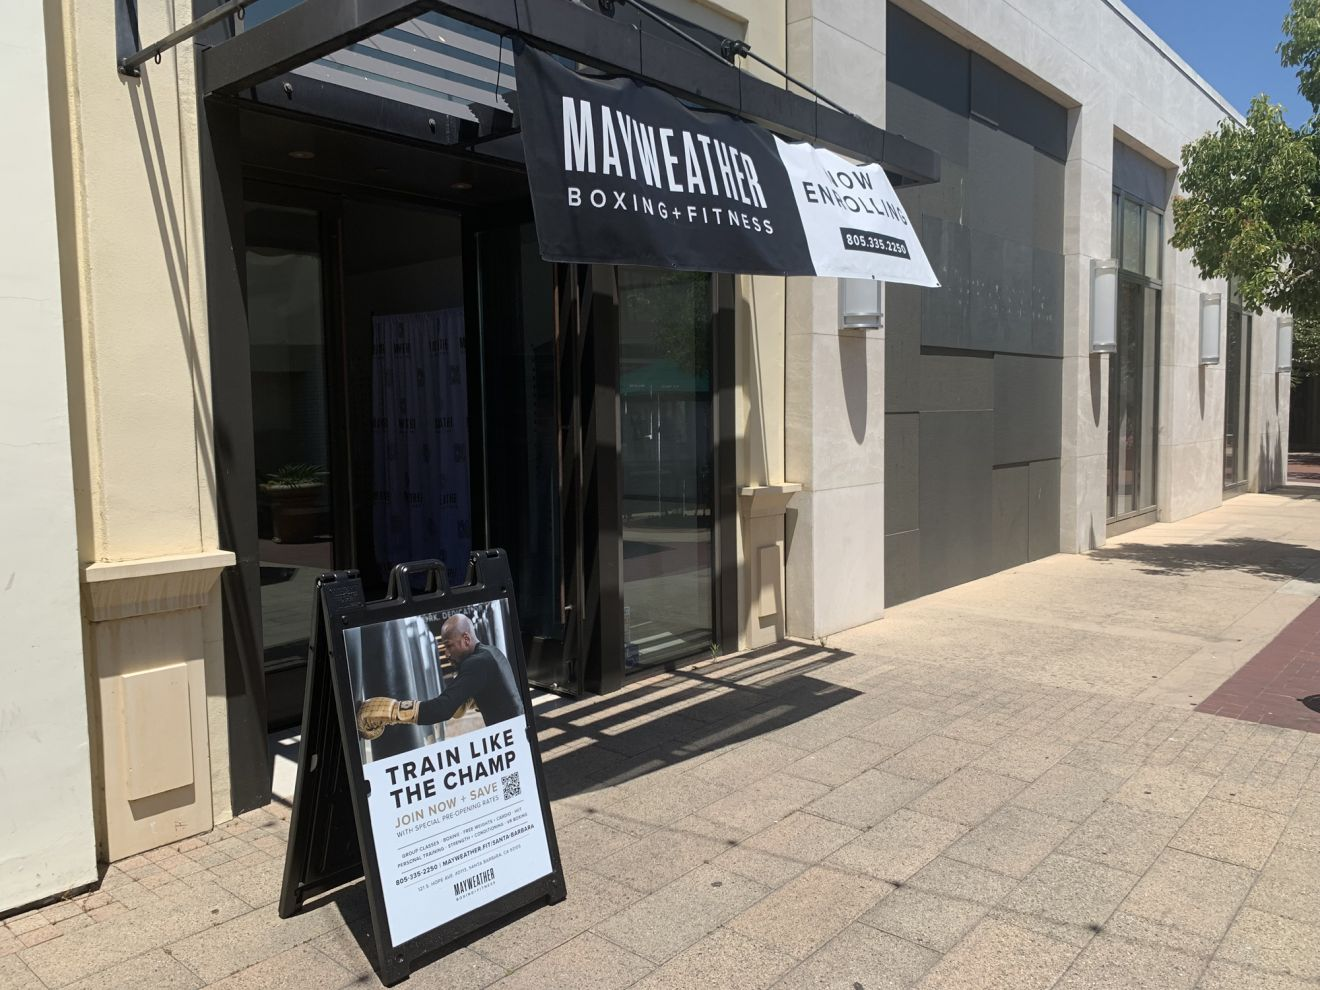 Mayweather Boxing + Fitness is set to open in Santa Barbara's La Cumbre Plaza in September.